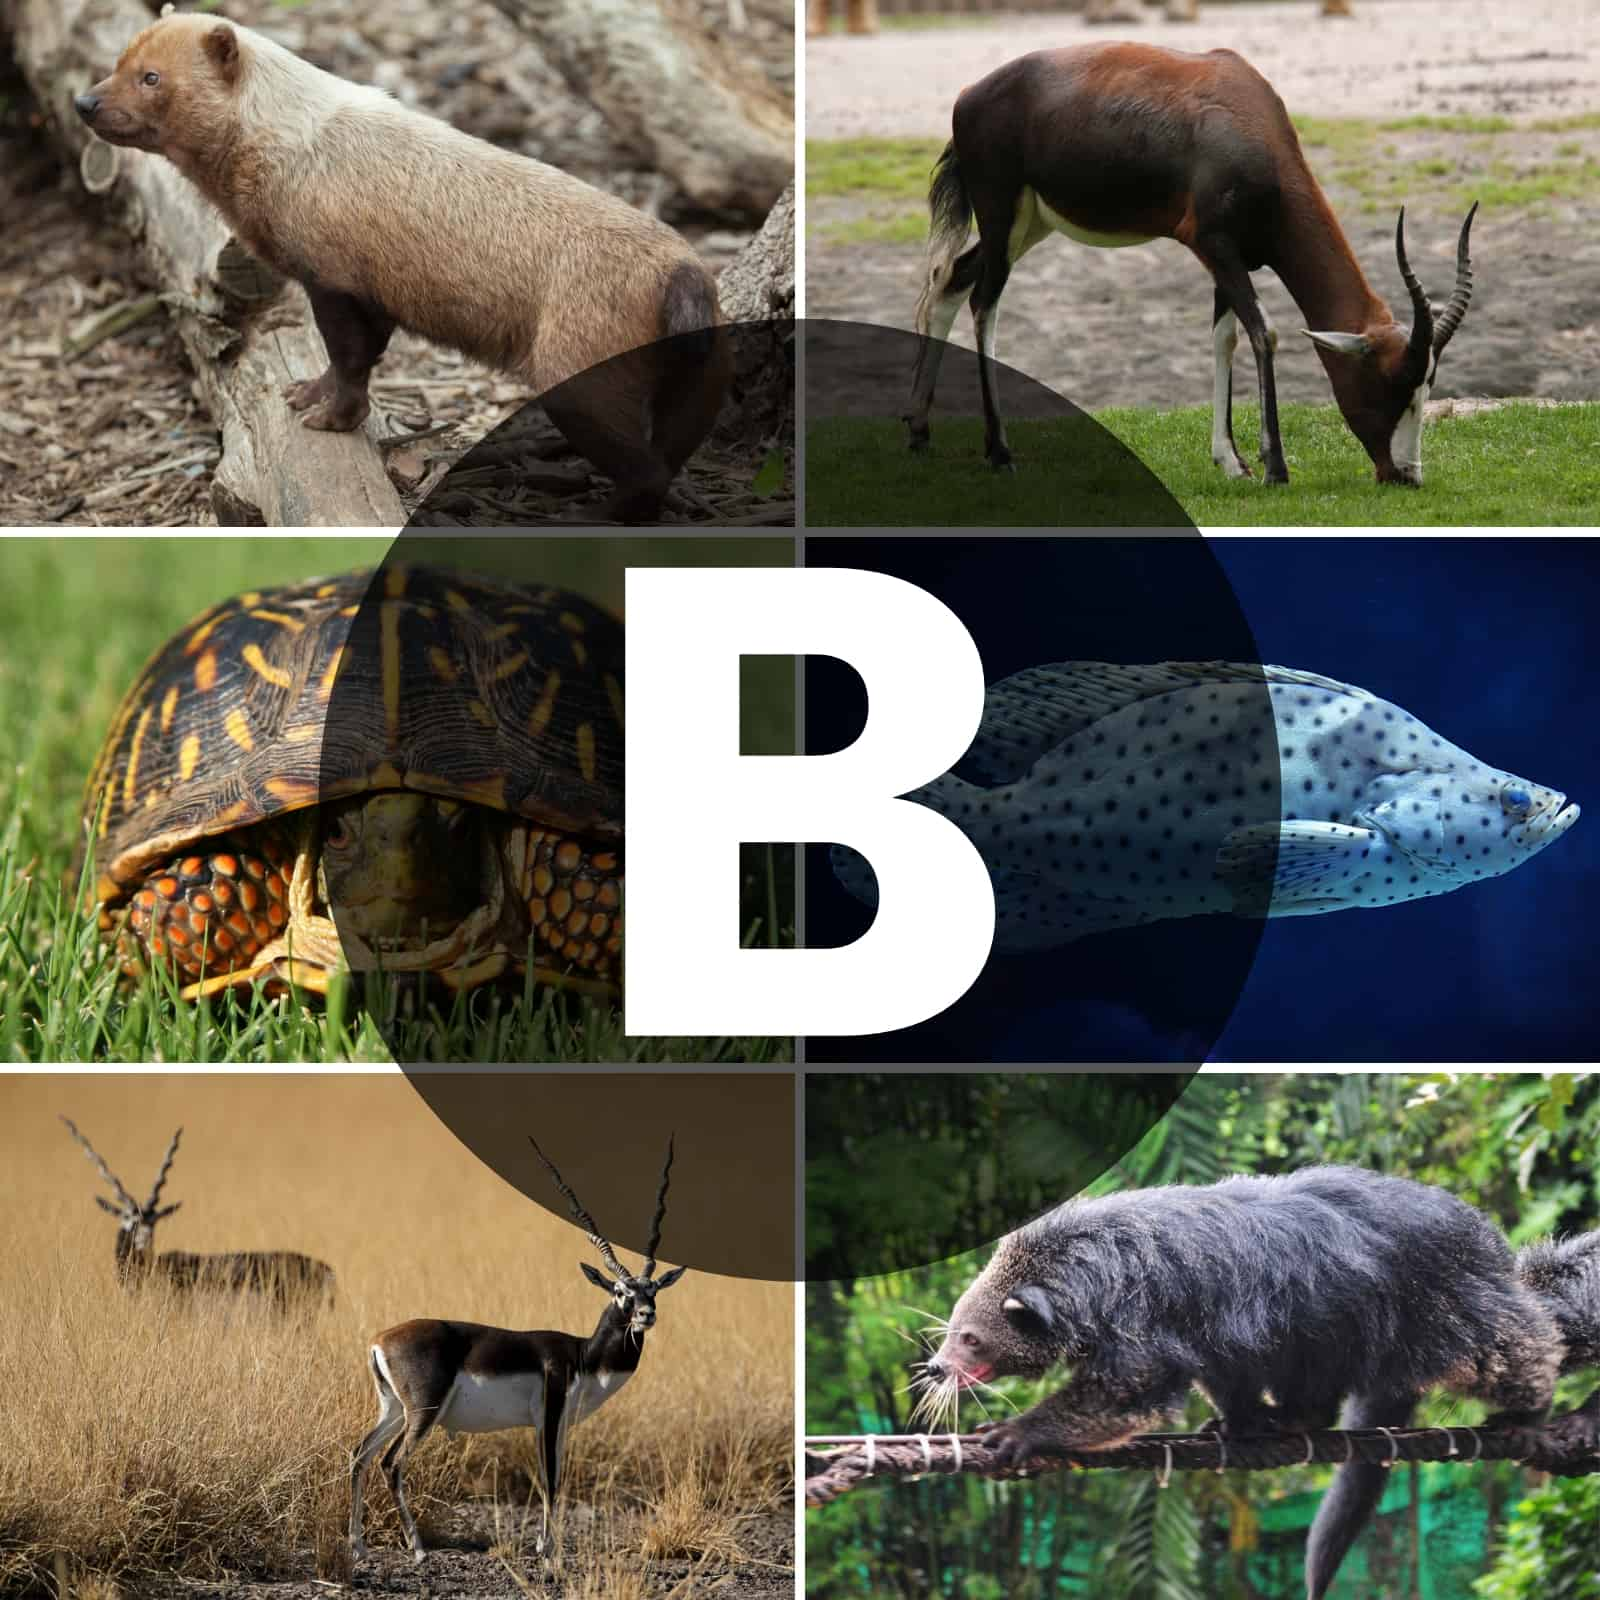 70 Animals That Start With B The Only List You Ll Need